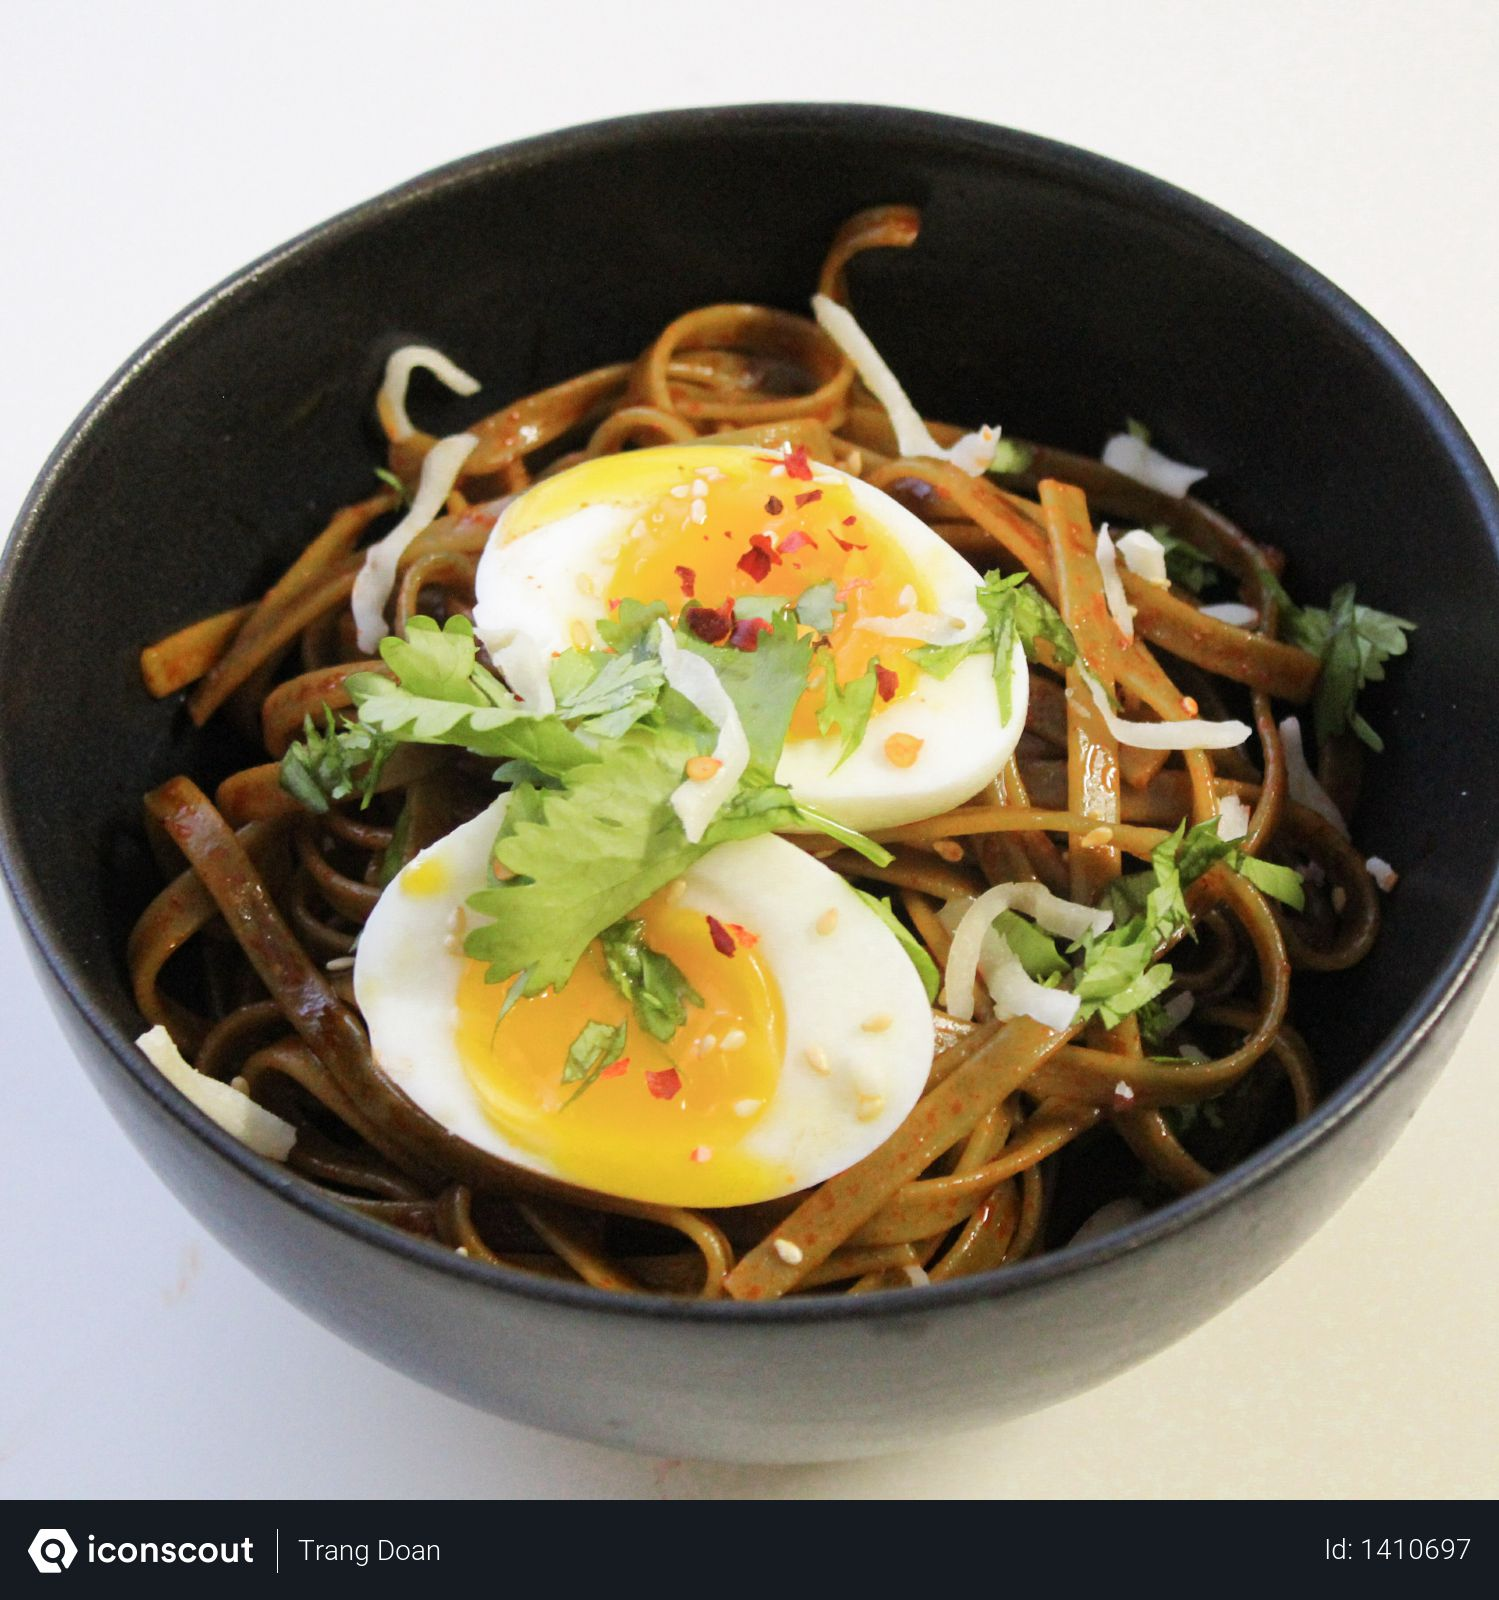 Bowl Filled With Noodles and Hard Boiled Egg Photo